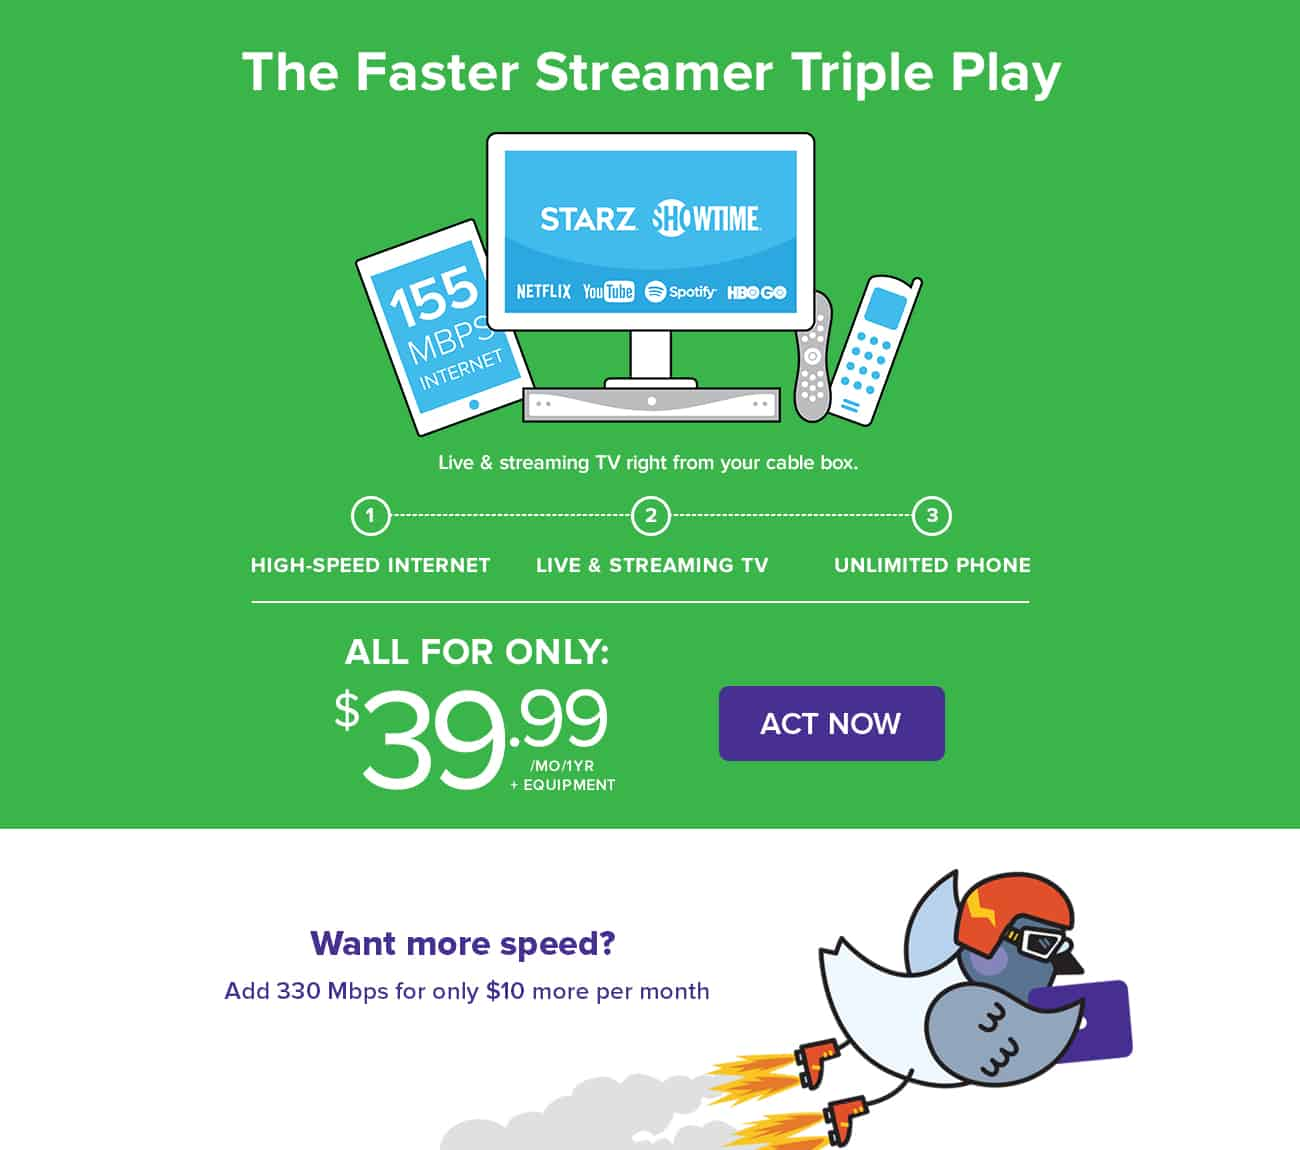 The Faster Streamer Triple Play